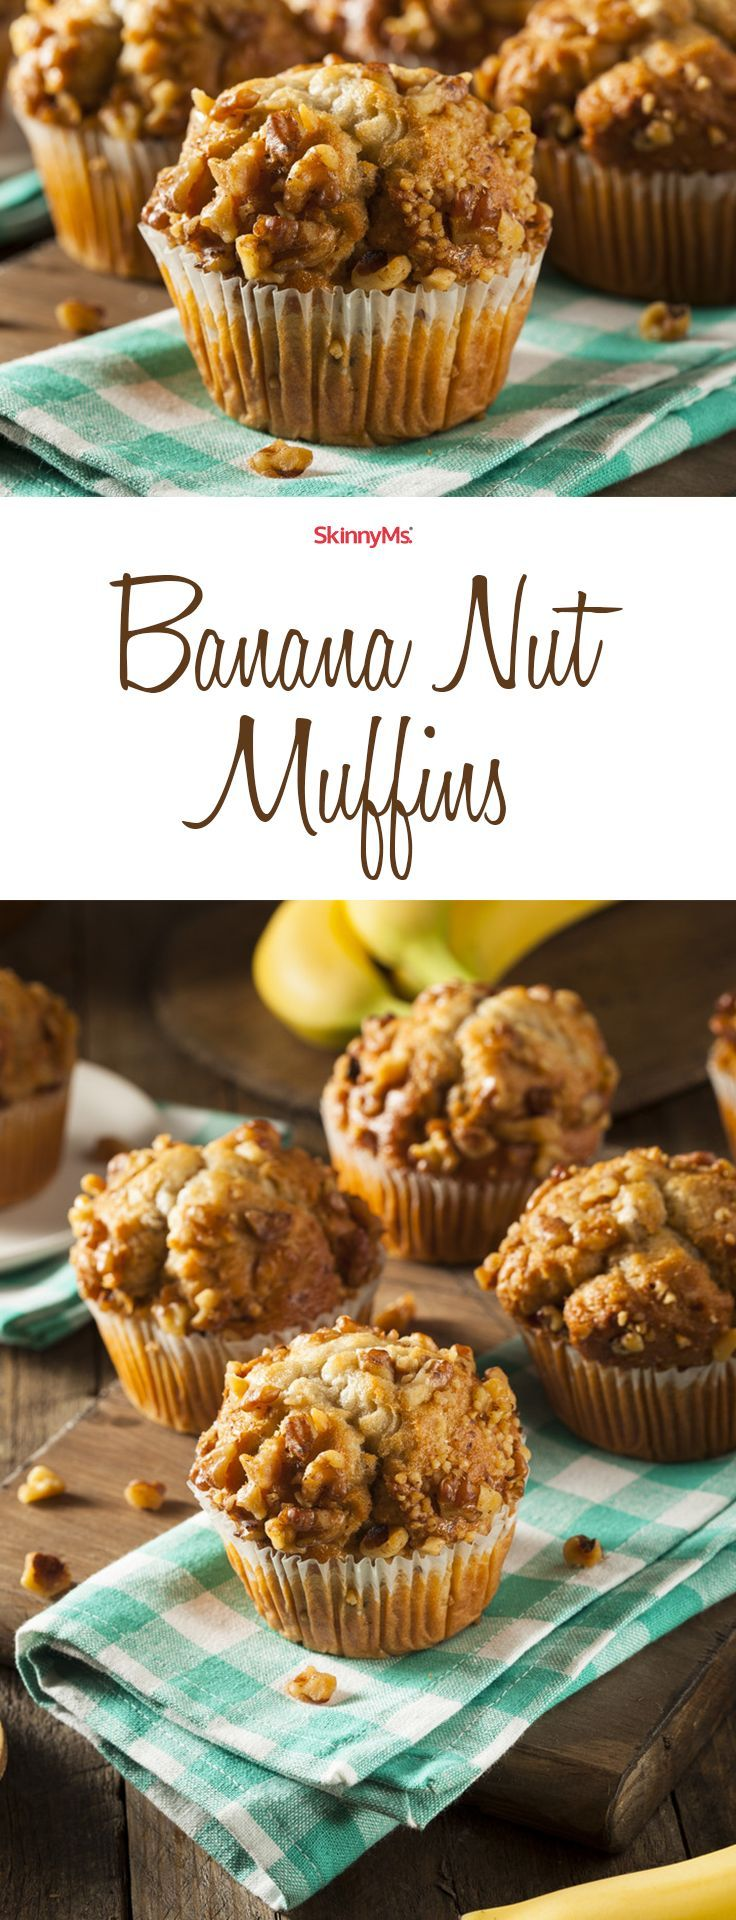 These Banana Nut Muffins are so good!